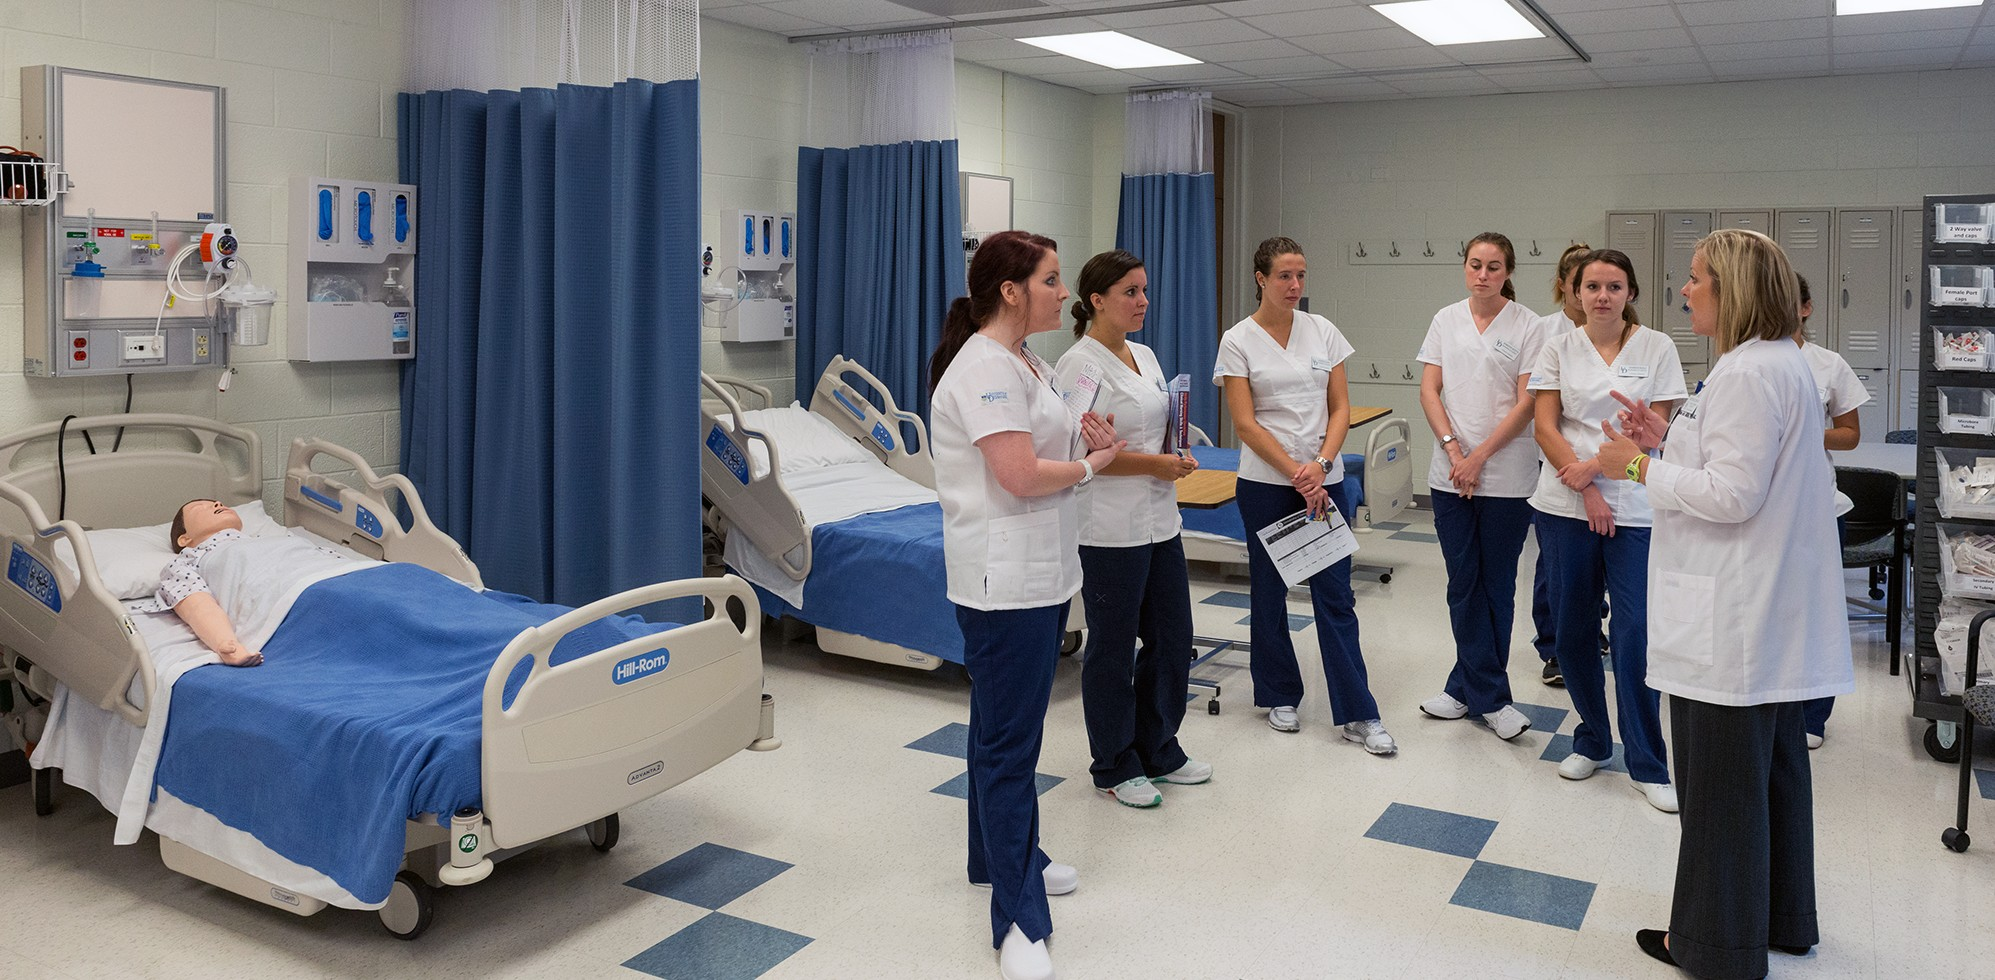 ... programs at University of Delaware are accredited by the Commission on  Collegiate Nursing Education, One Dupont Circle, NW, Suite 530, Washington  DC ...